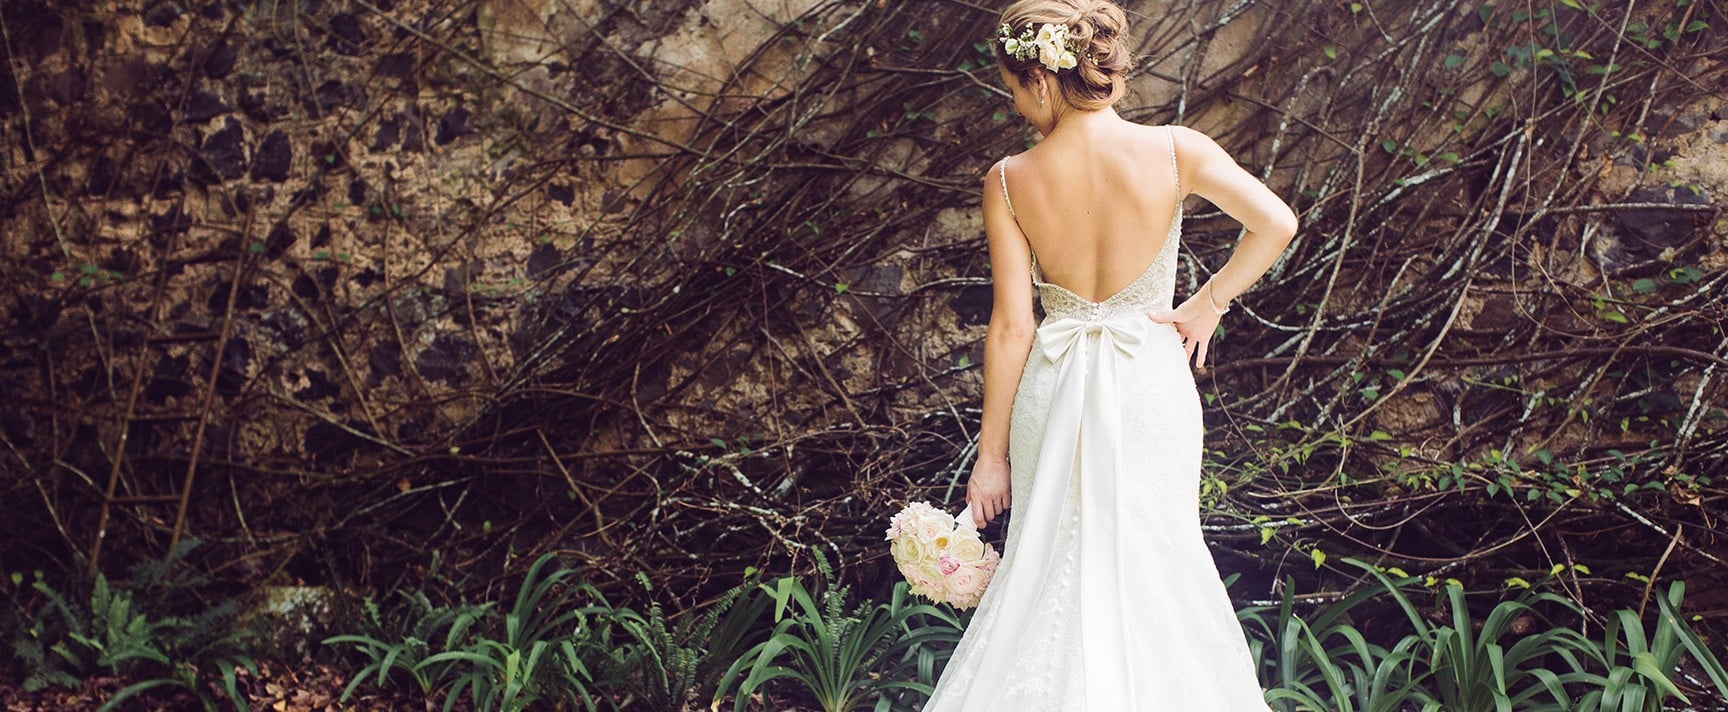 Can't Wait to Wedding Dress Shop? This Expert Has Advice on the Best Time to Go